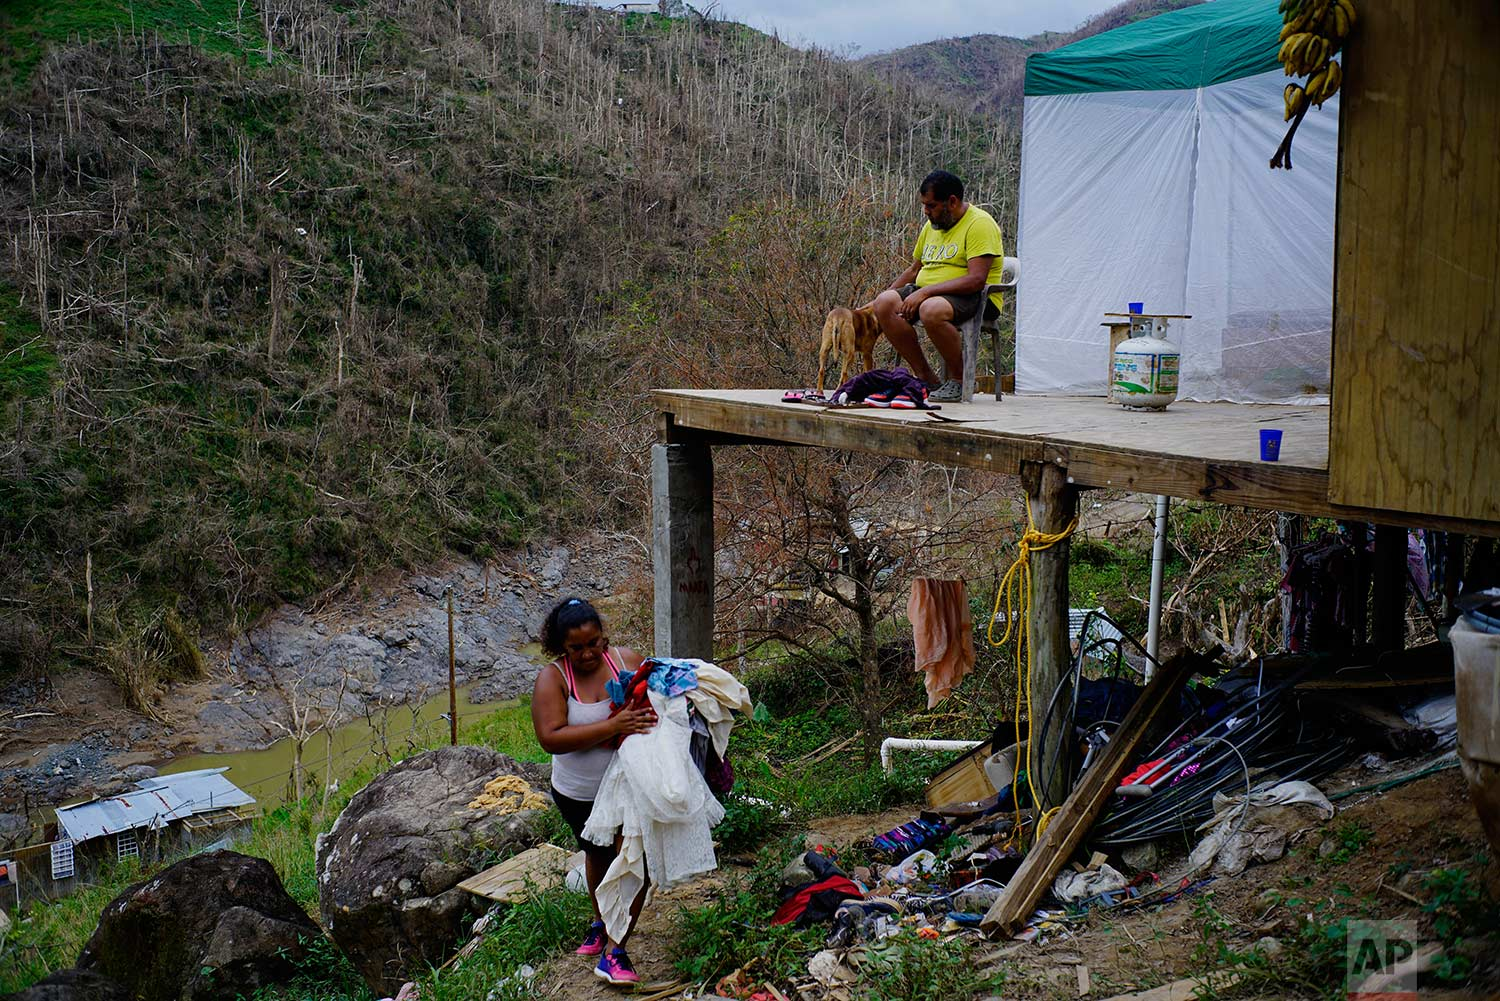 Yadira Sortre and William Fontan Quintero clean their house, destroyed by Hurricane Maria in in Morovis, Puerto Rico, Sunday, Oct. 1, 2017. (AP Photo/Ramon Espinosa)